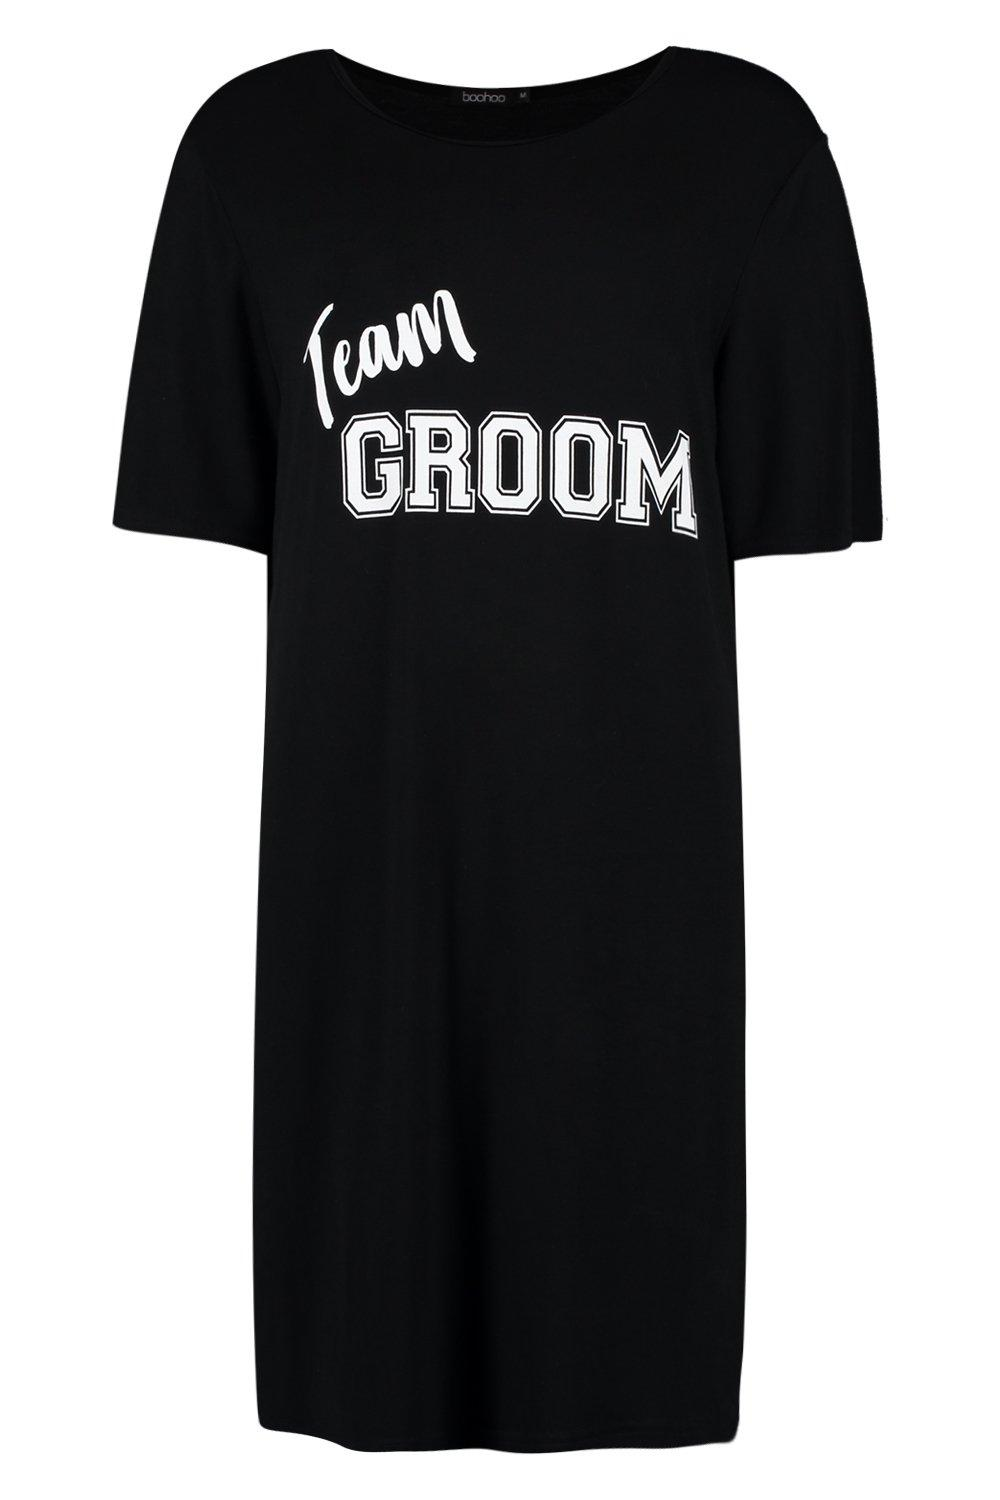 Groom Sleep Team Groom Tee Tee Sleep black Team black Groom Team qt68wH5a